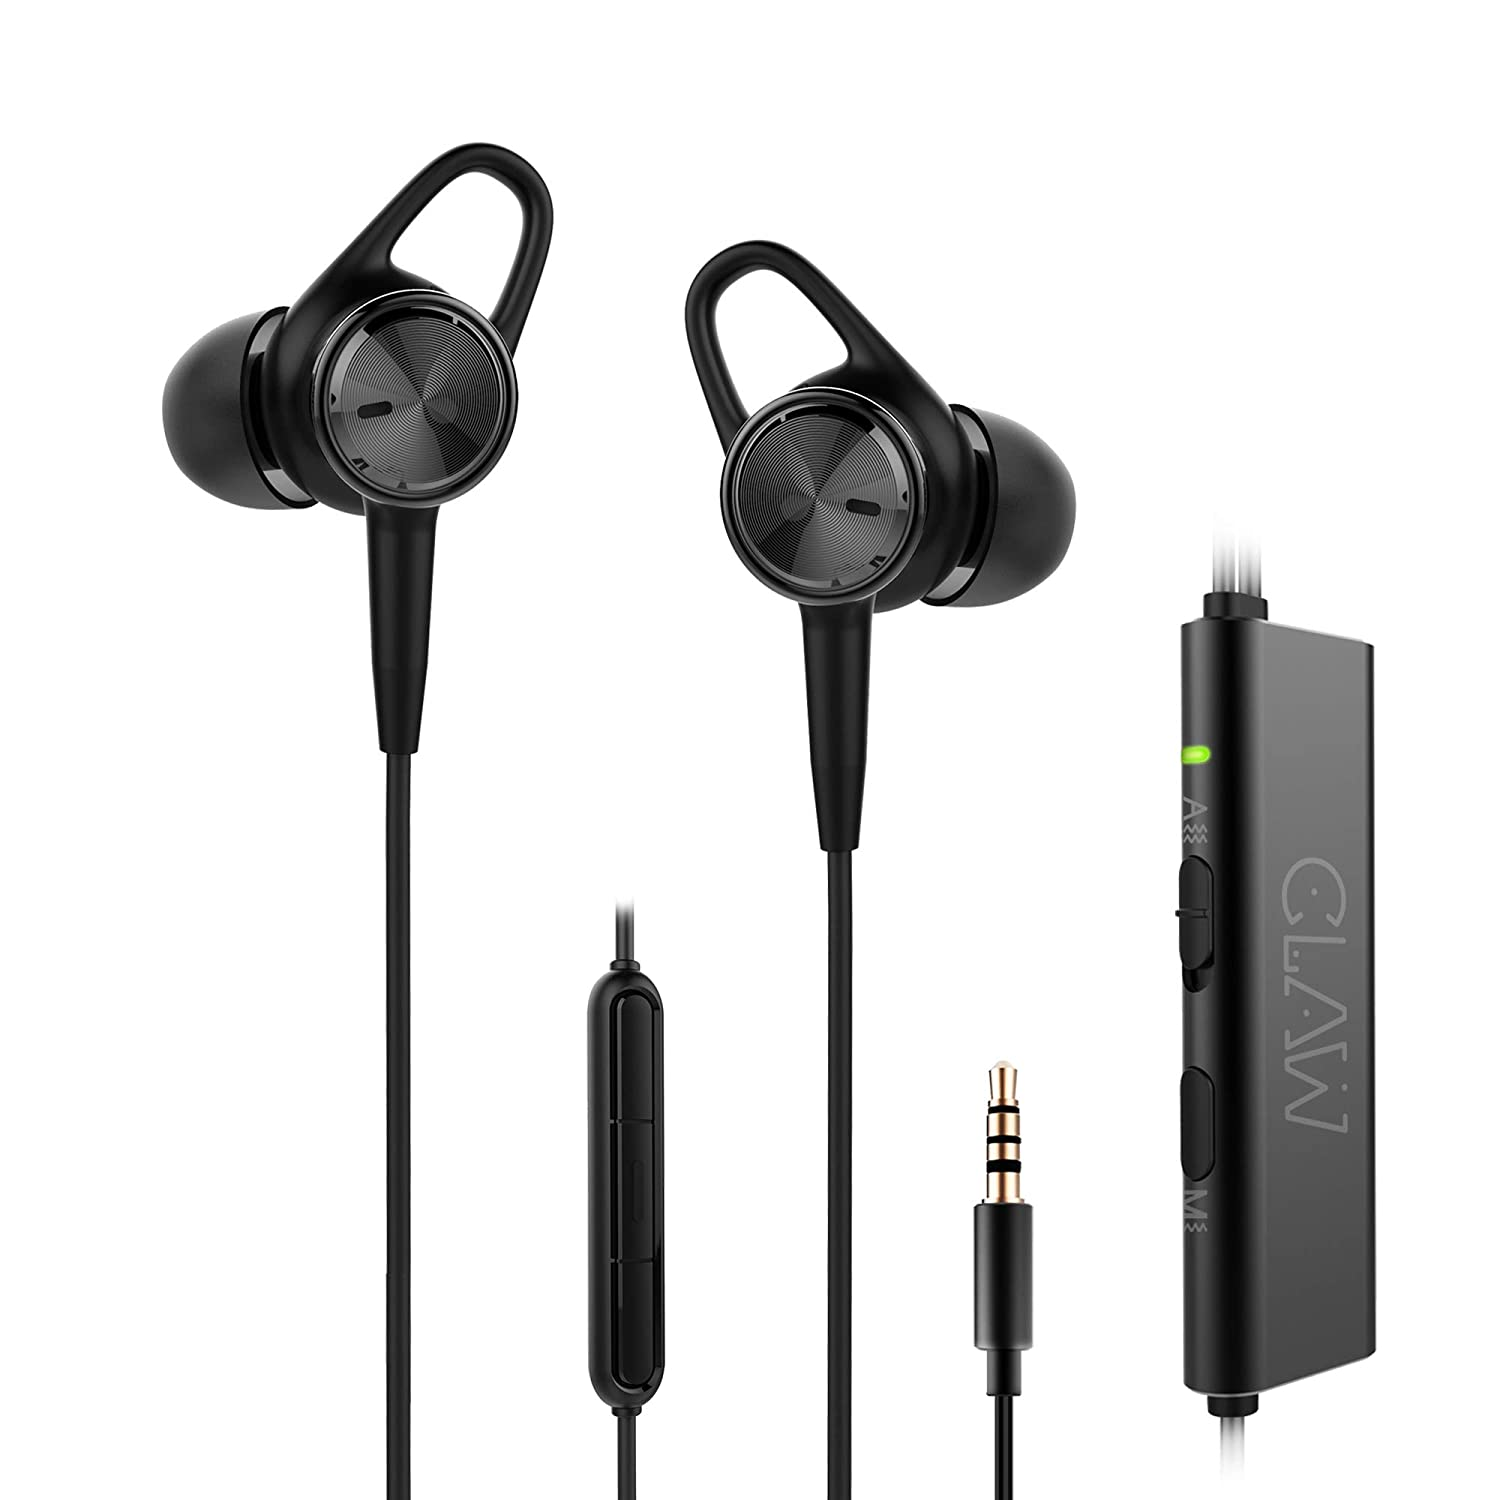 CLAW ANC7 Active Noise Cancelling Earphones